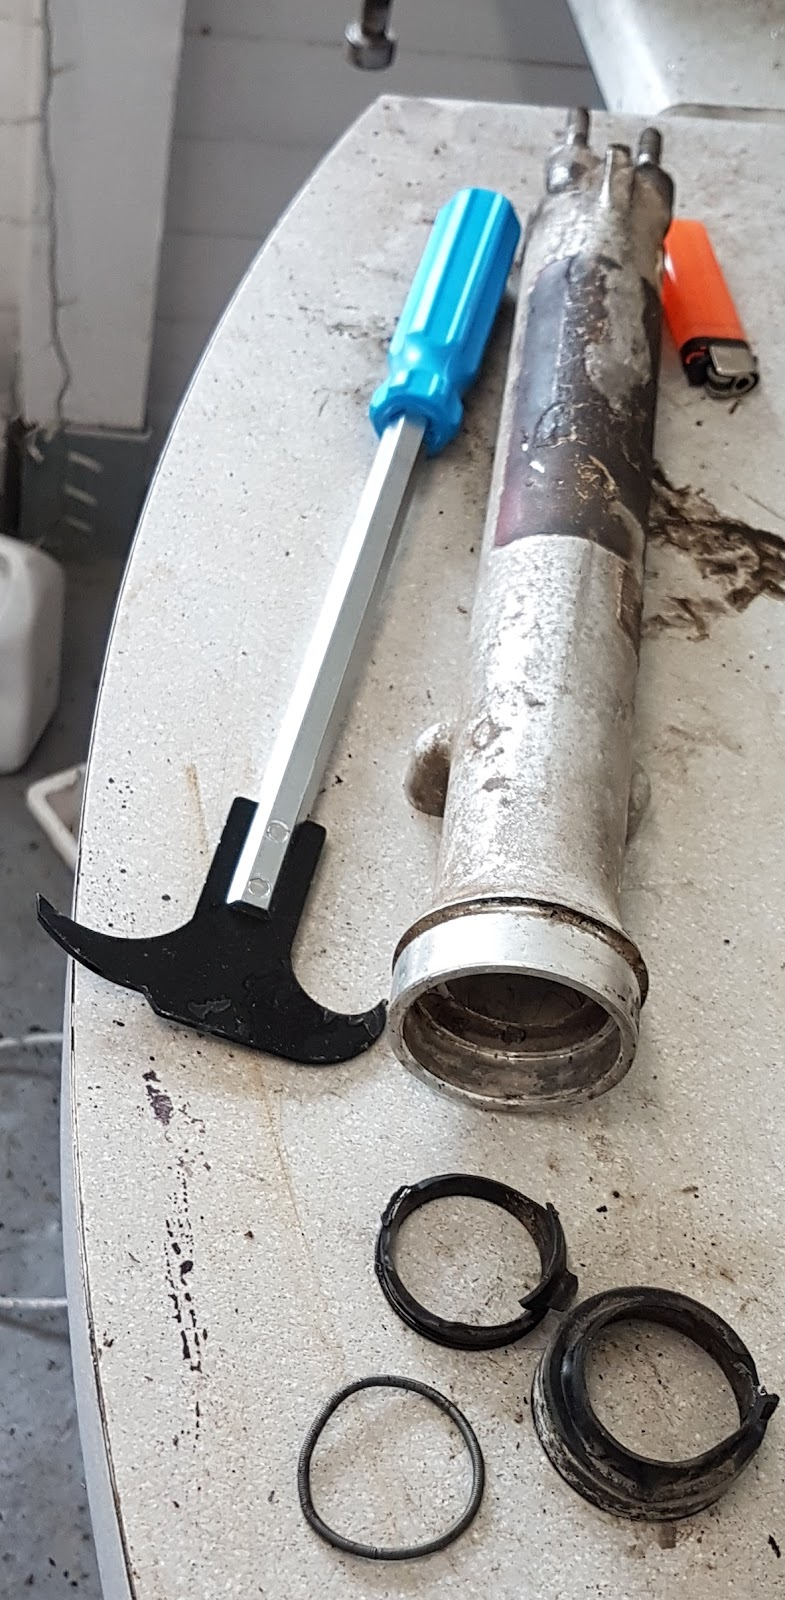 Oil real removal tool being used on the fork legs.